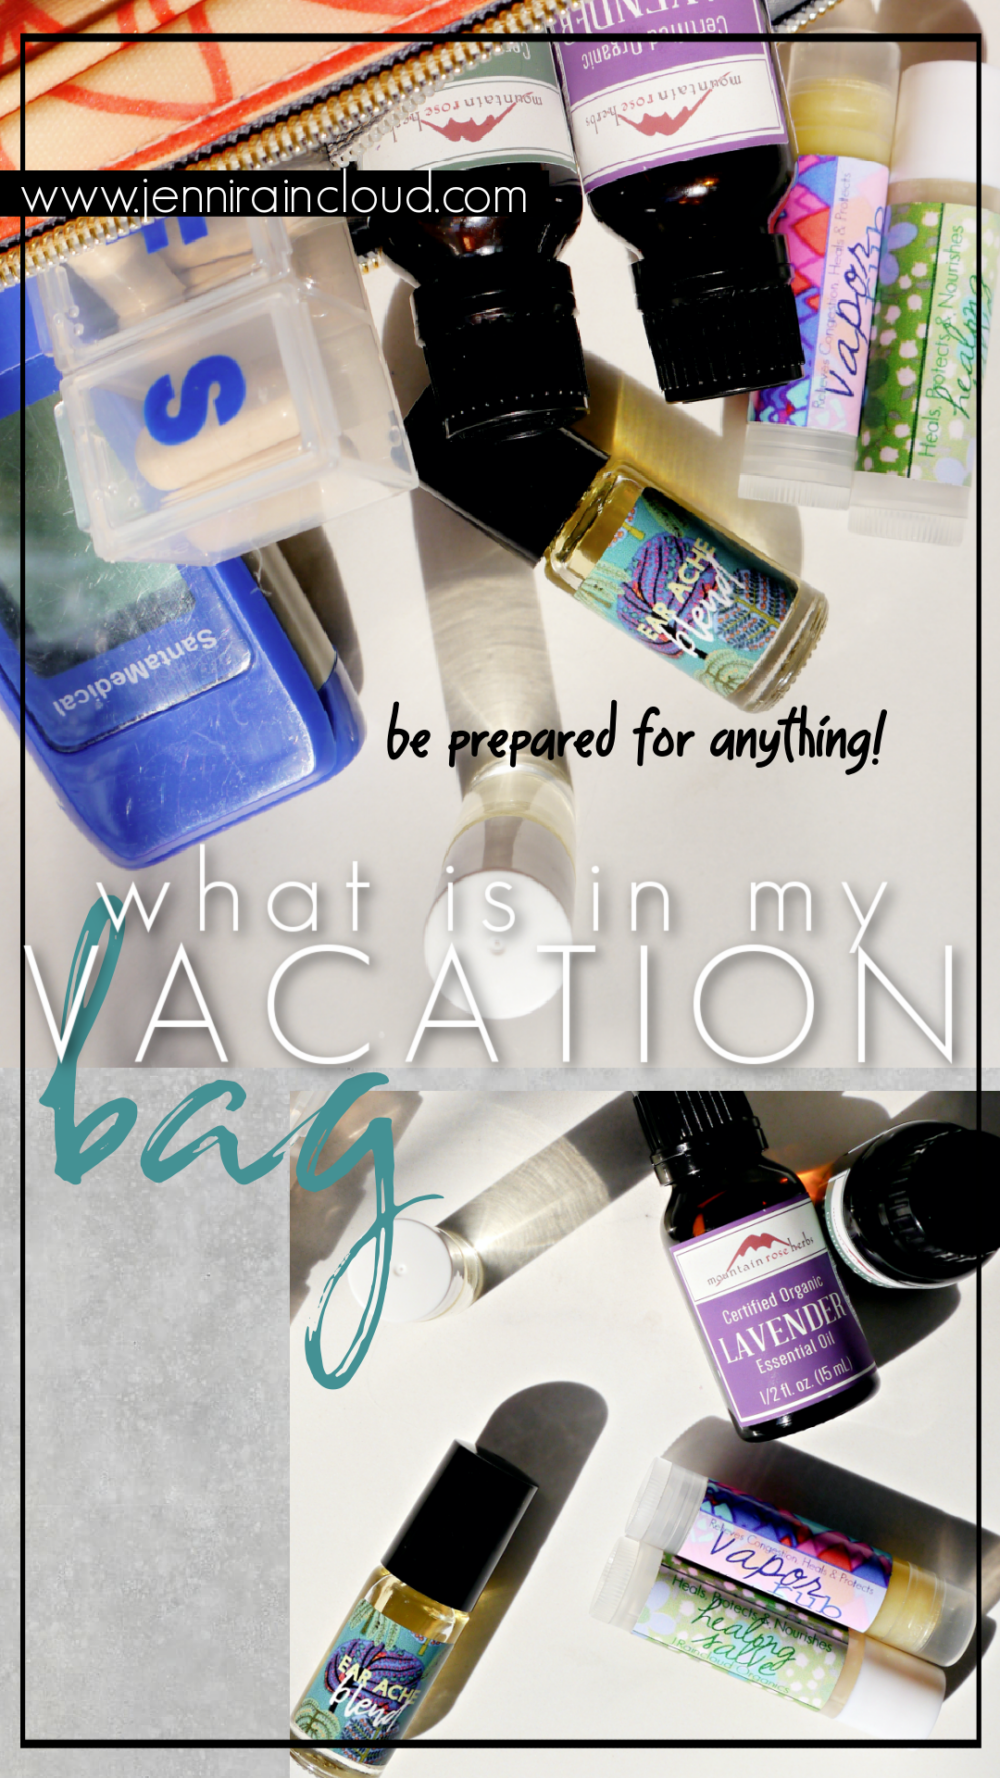 Essential Oils for Vacation